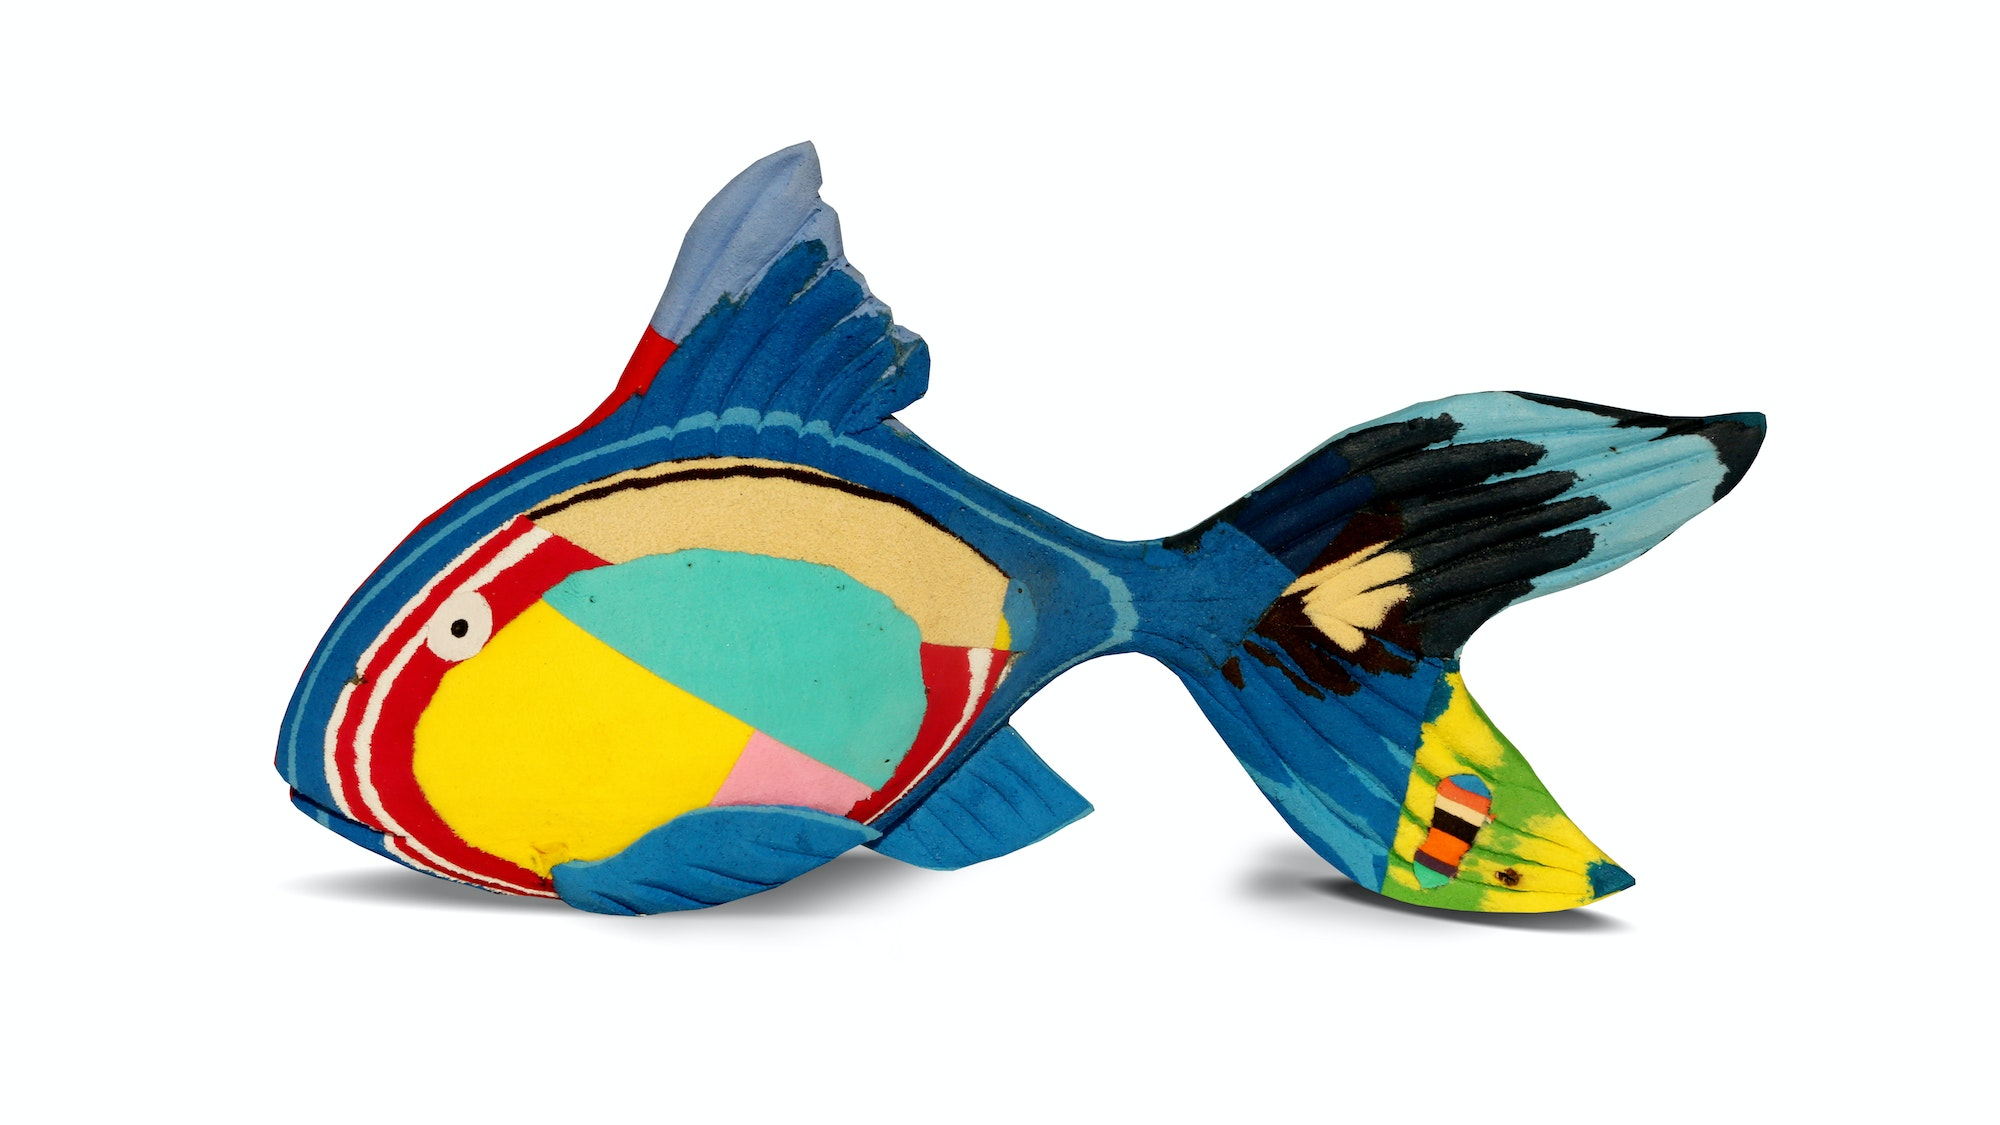 A reef fish sculpture, repurposed from plastic flip-flops, from Sea Star Beachwear X Ocean Sole's Bahari Collection, $45